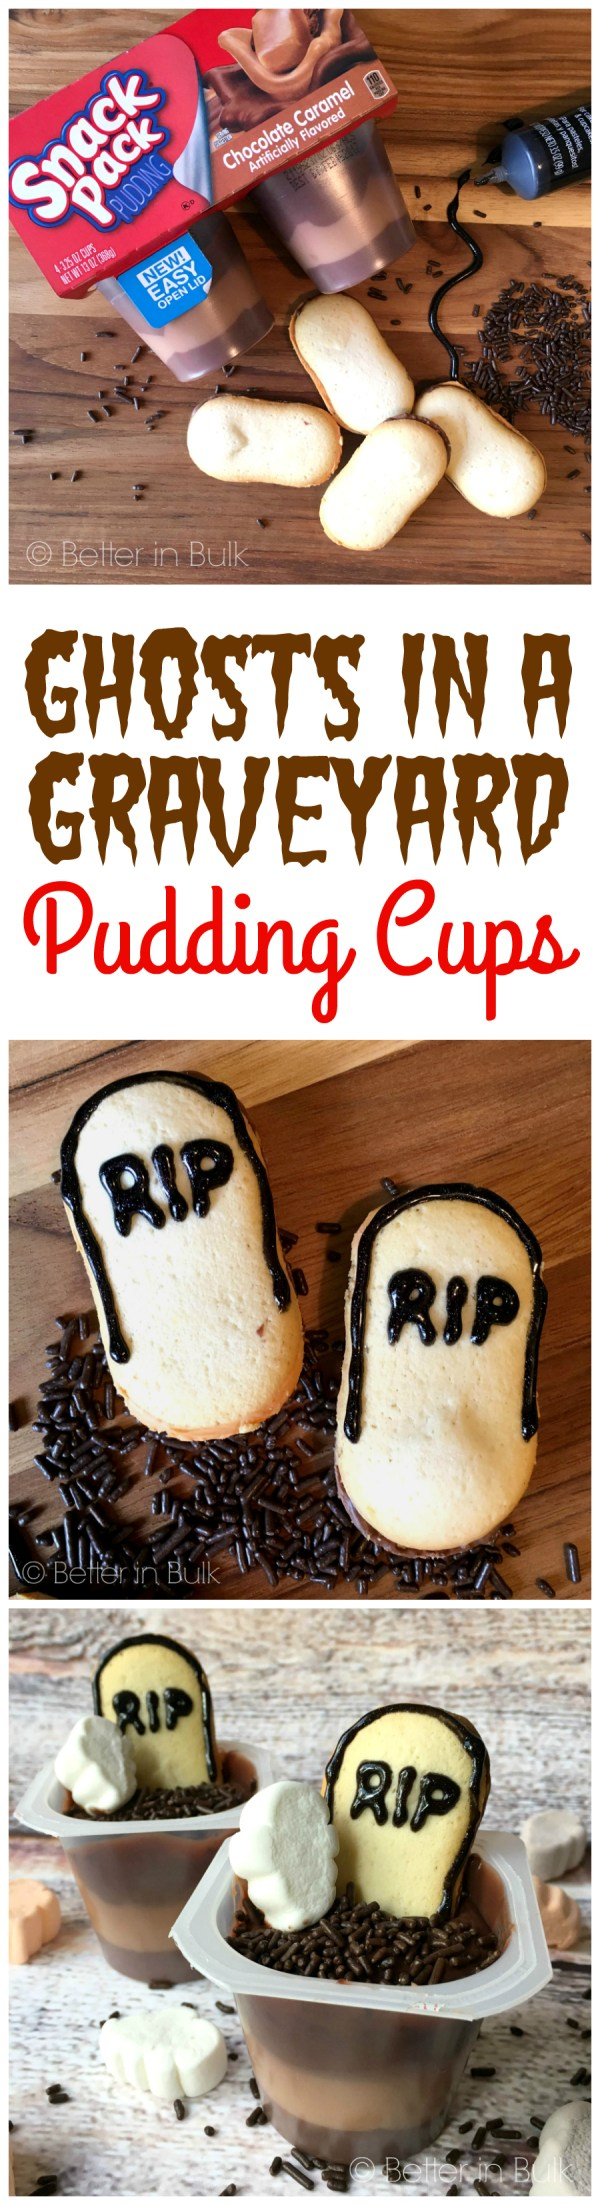 Ghosts in a Graveyard Pudding Cups Easy Halloween Recipe from Better in Bulk